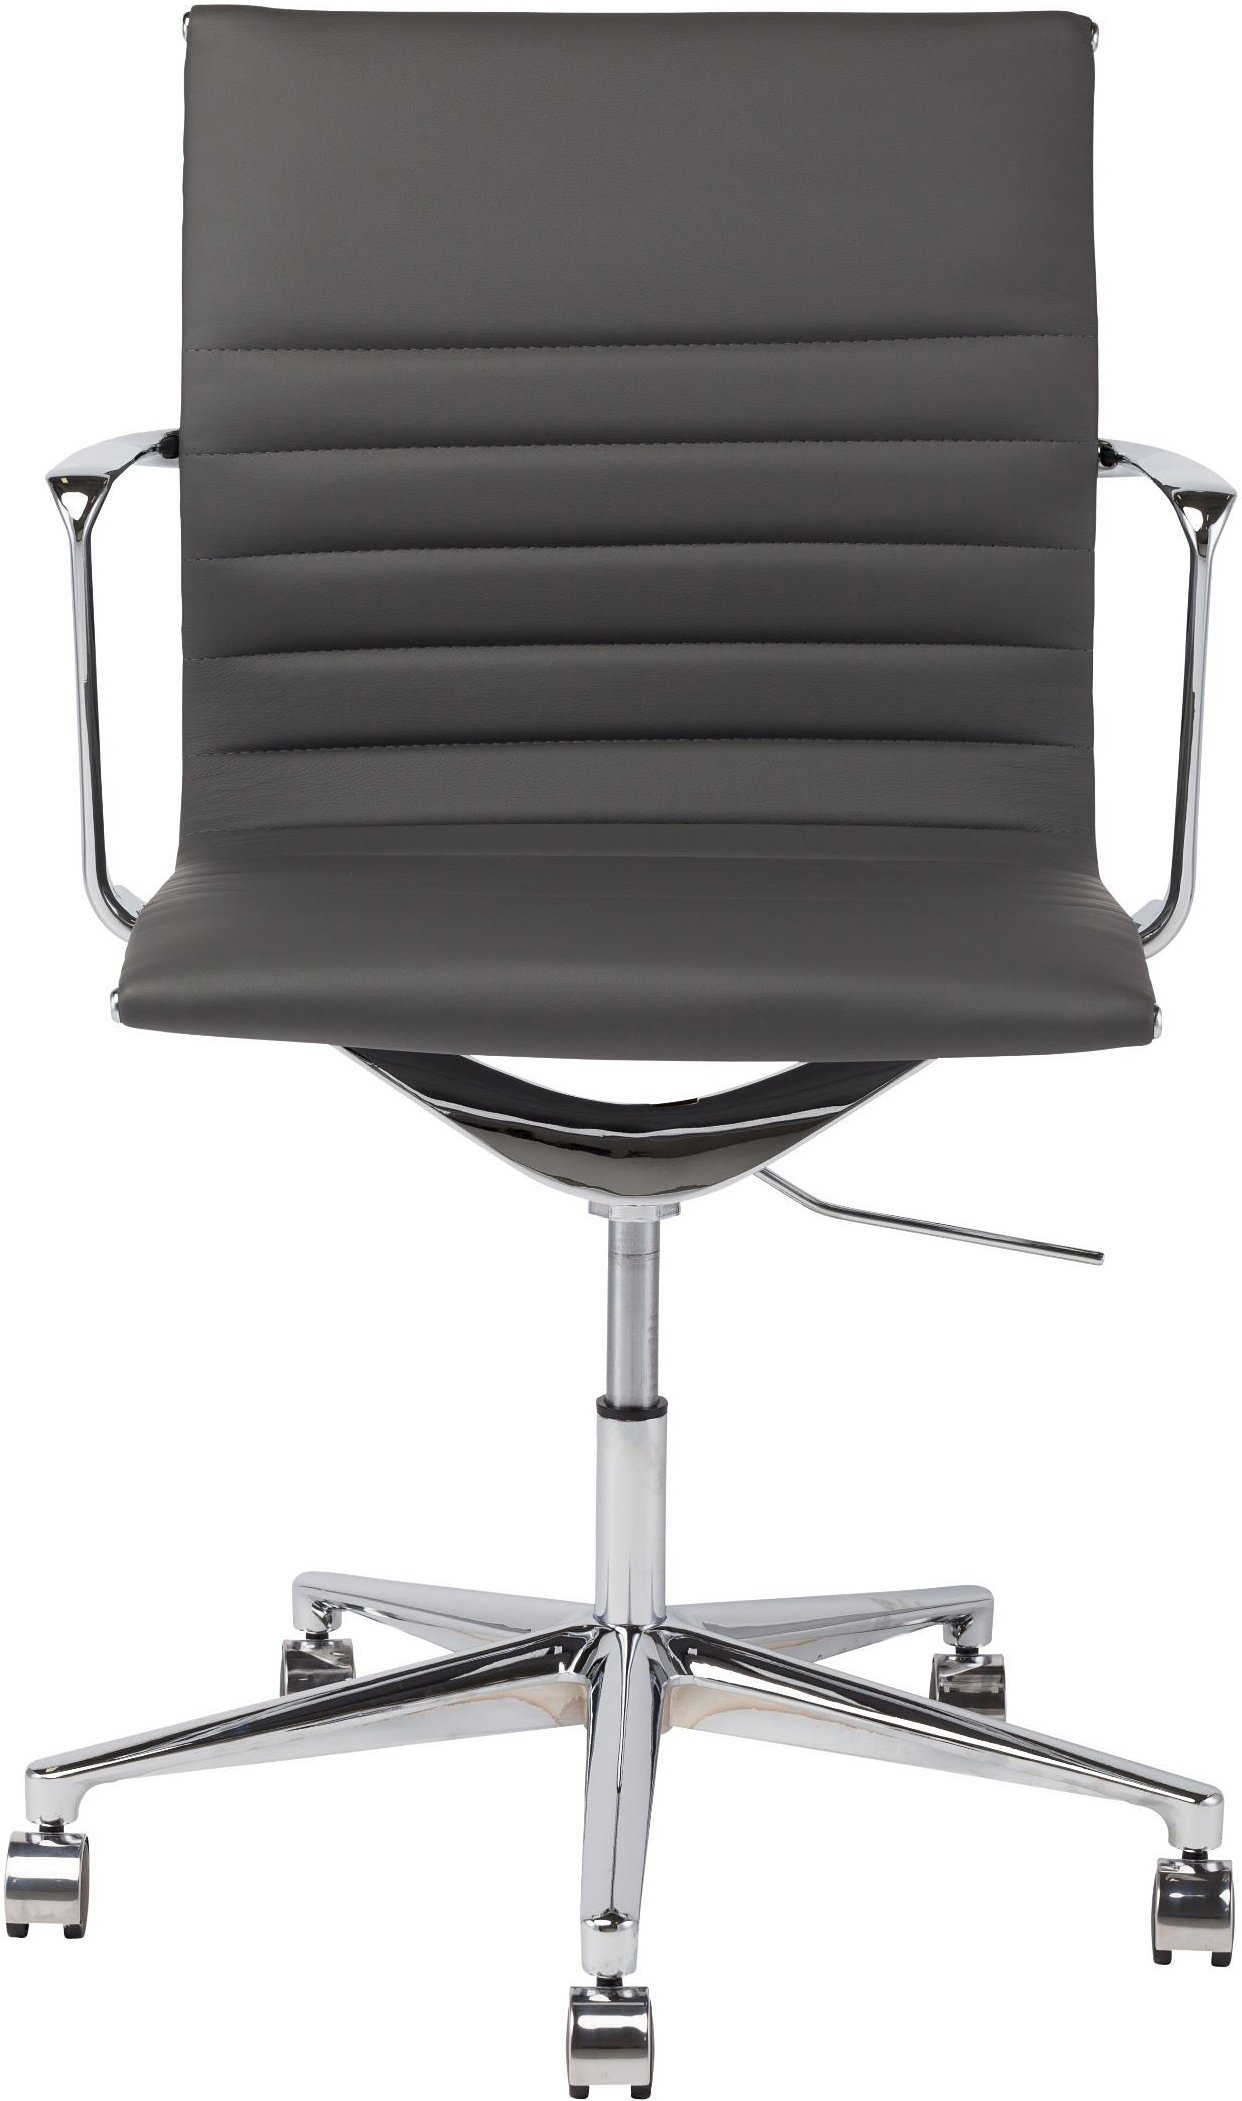 the antonio office chair in dark grey